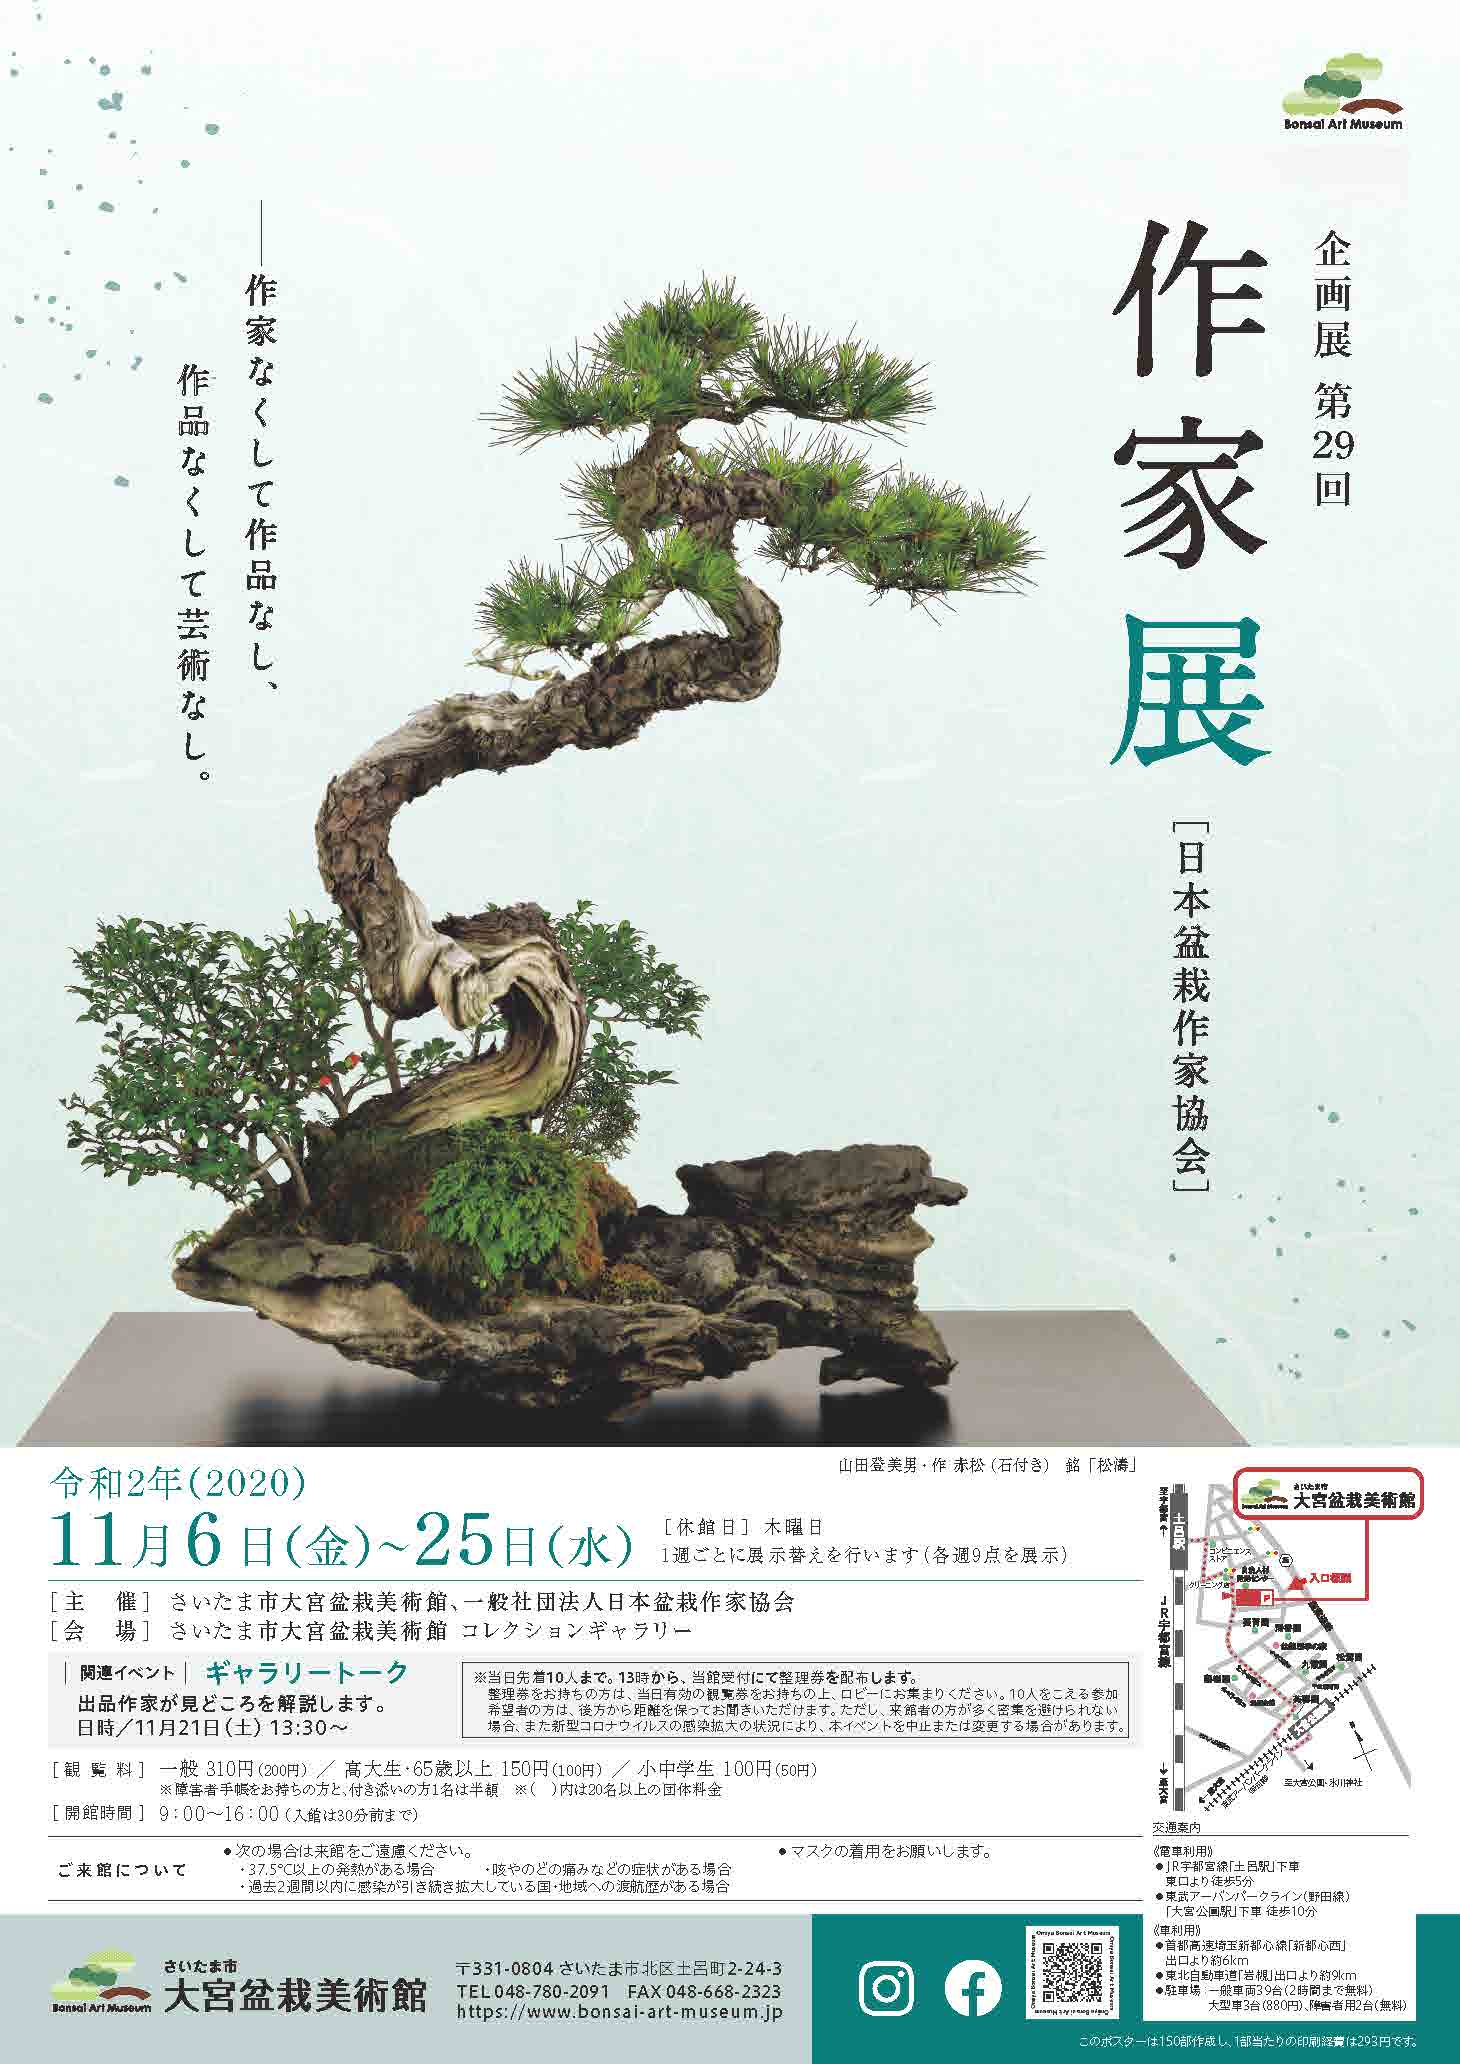 The 29th  Sakka Exhibition (Japan Bonsai Artists Association)